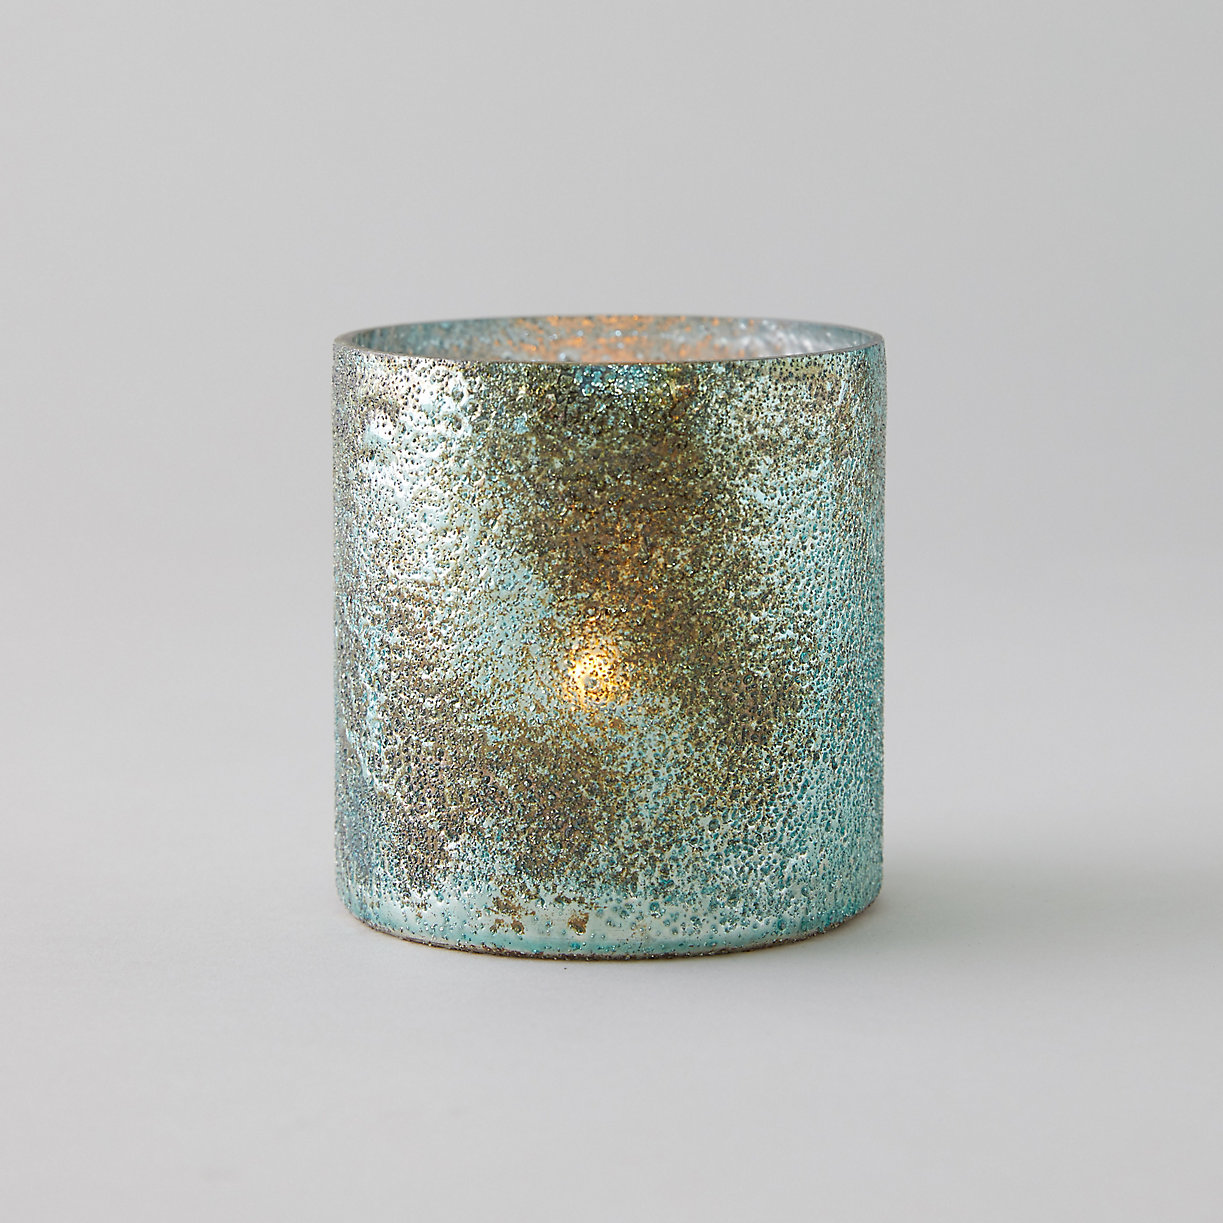 Textured Copper + Turquoise Votive $14.00